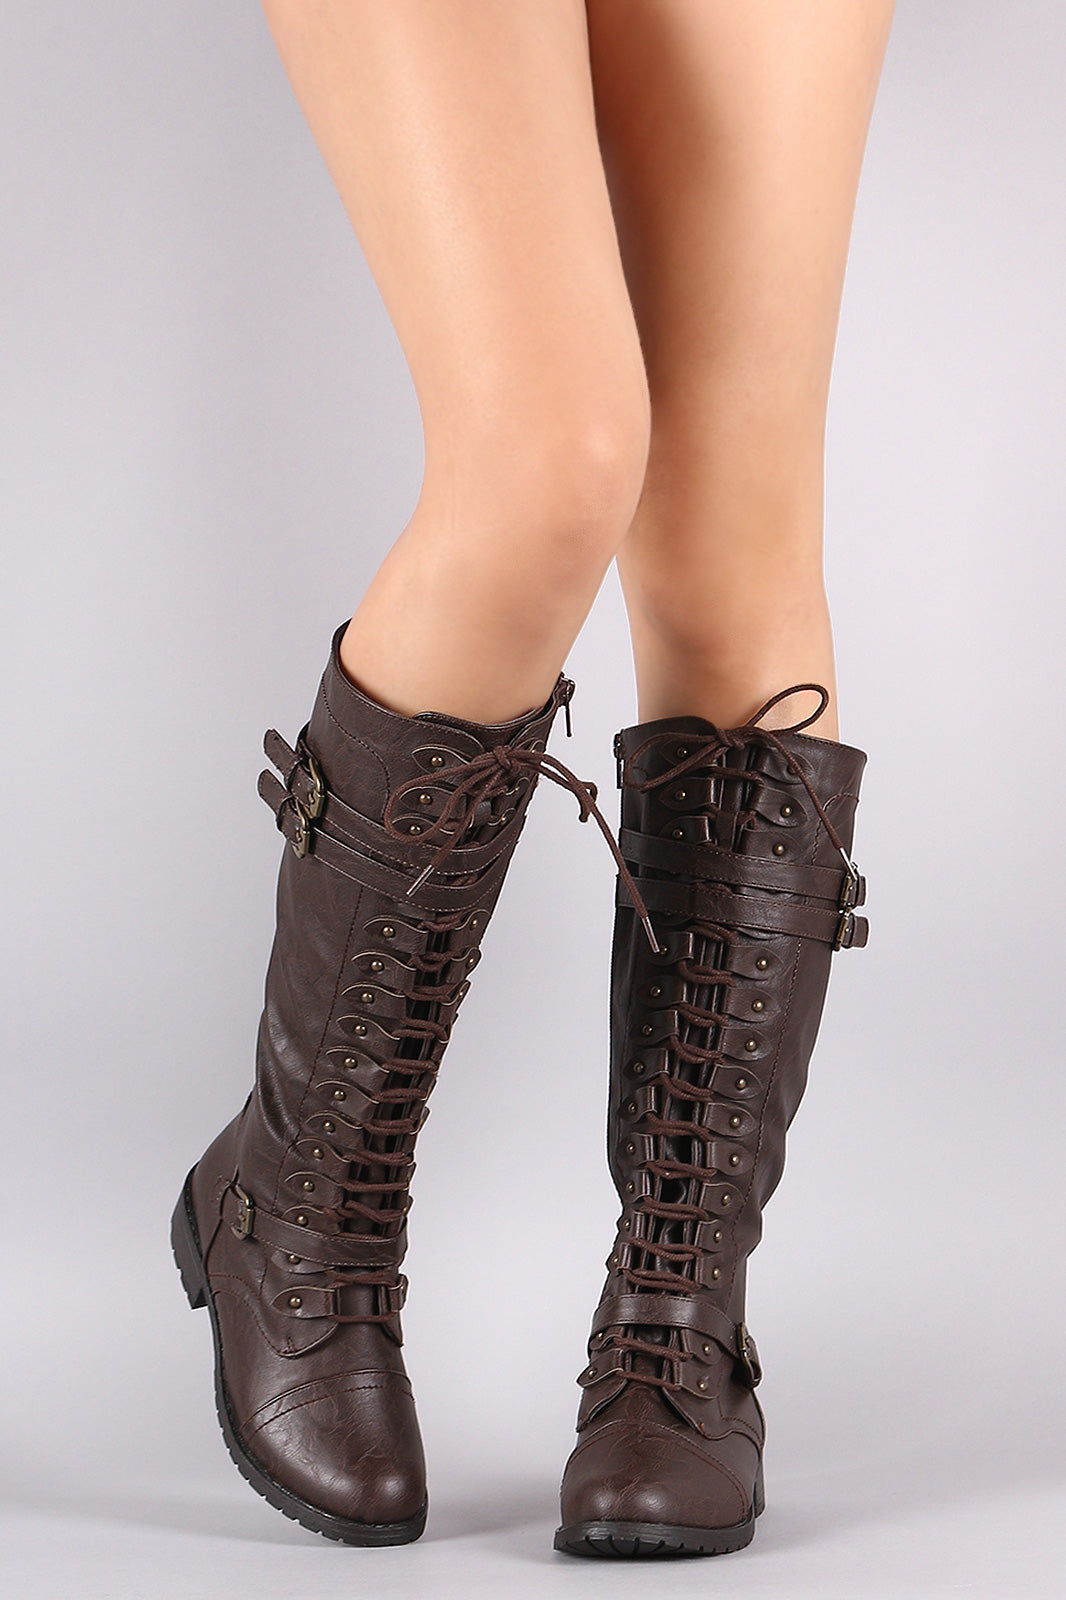 4bc04f8e06fd Wild Diva Lounge Triple Buckle Lace Up Military Knee High Boots-Shoes